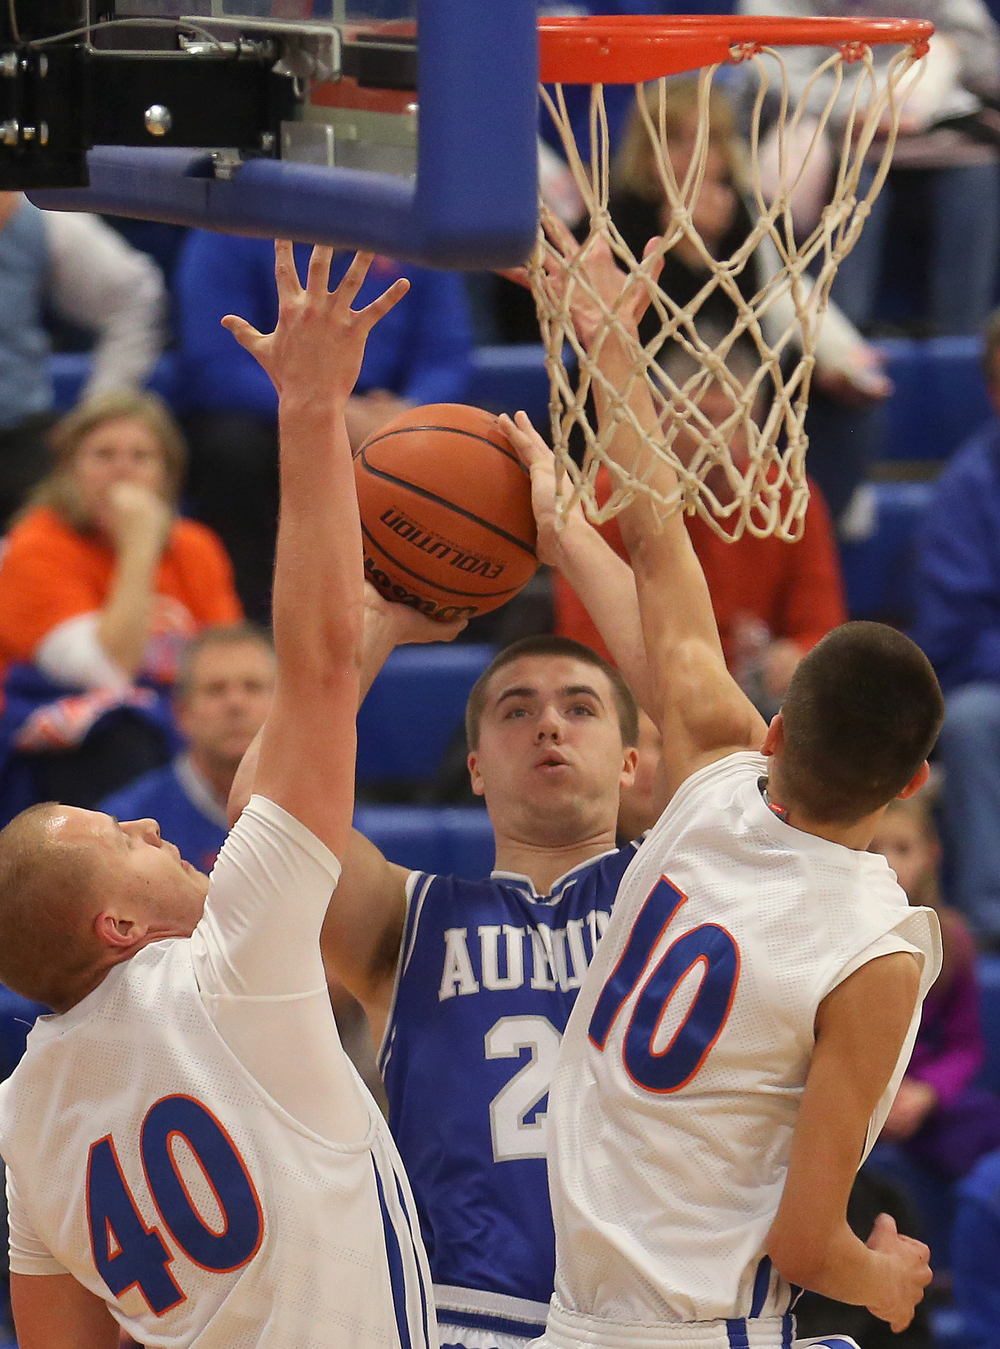 Auburn player Scott McDermand puts up two points while being defended by Riverton players Blake Suhling at left and Marc Hinkle. Auburn defeated Riverton 55-52 in boys quarterfinal action at the Sangamon County Basketball Tournament at Cass gymnasium at Lincoln Land Community College in Springfield on Tuesday evening, Jan. 13, 2015. David Spencer/The State Journal-Register